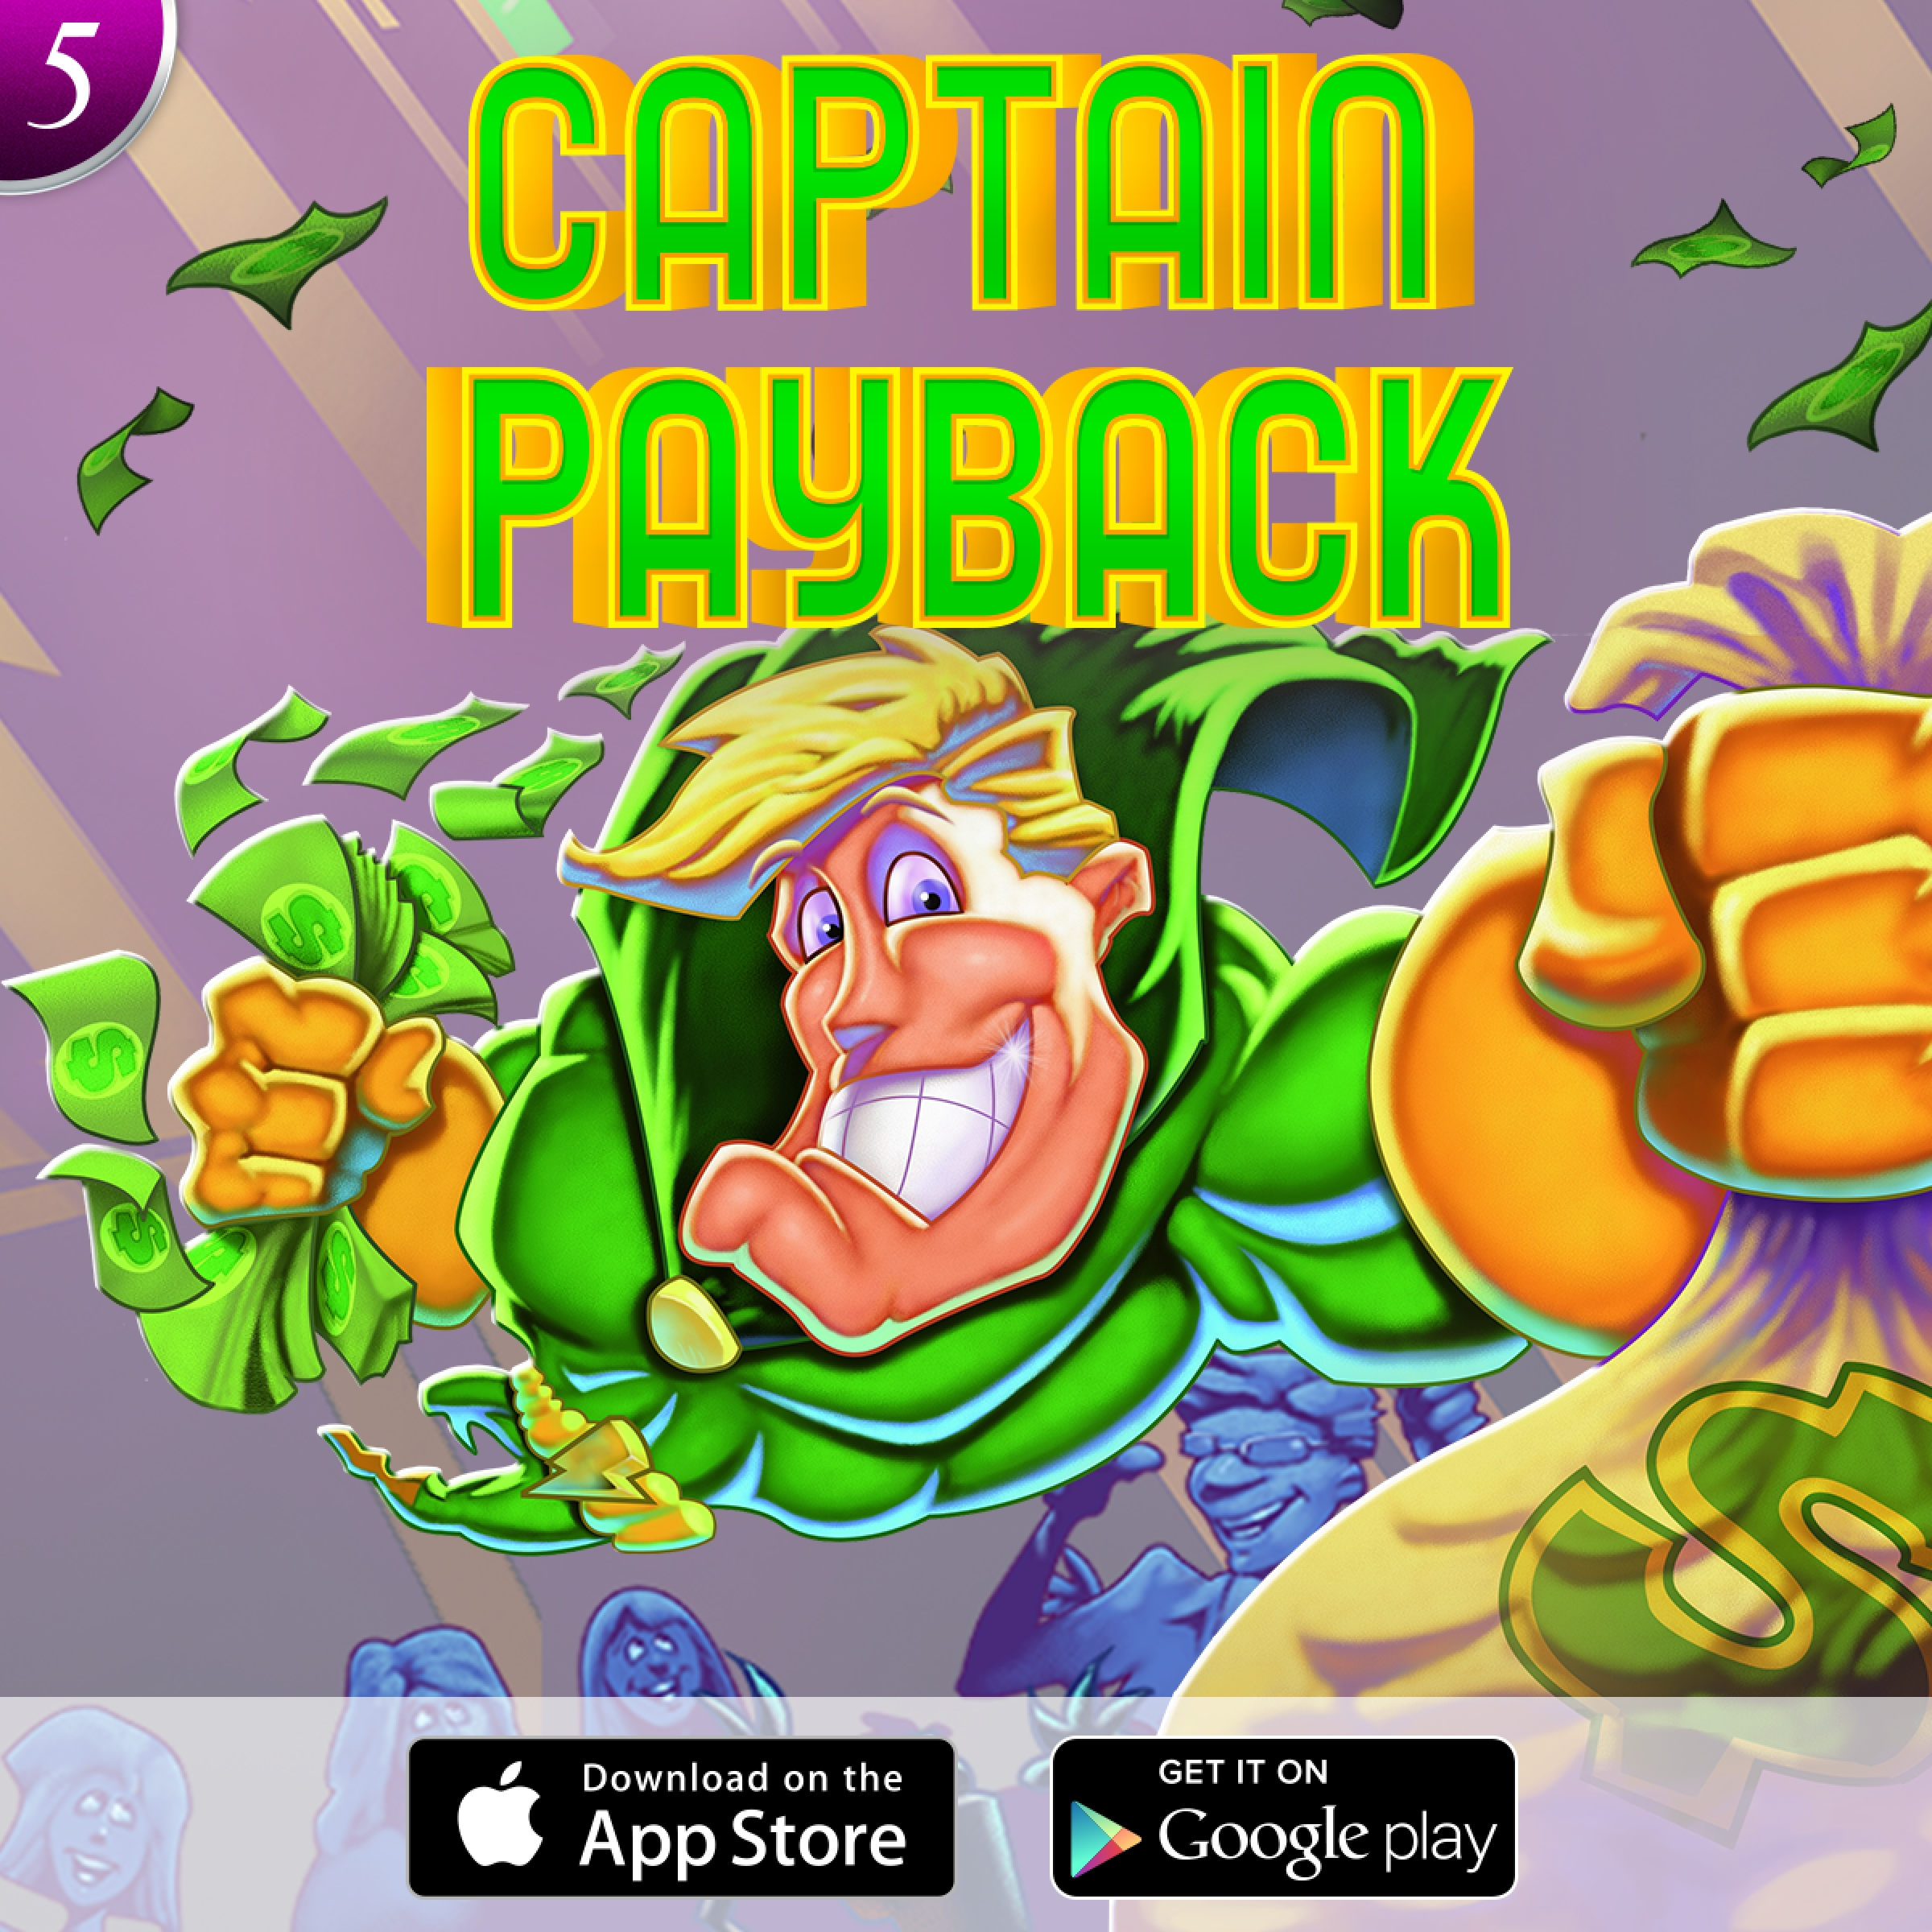 The Captain Payback Online Slot Demo Game by High 5 Games